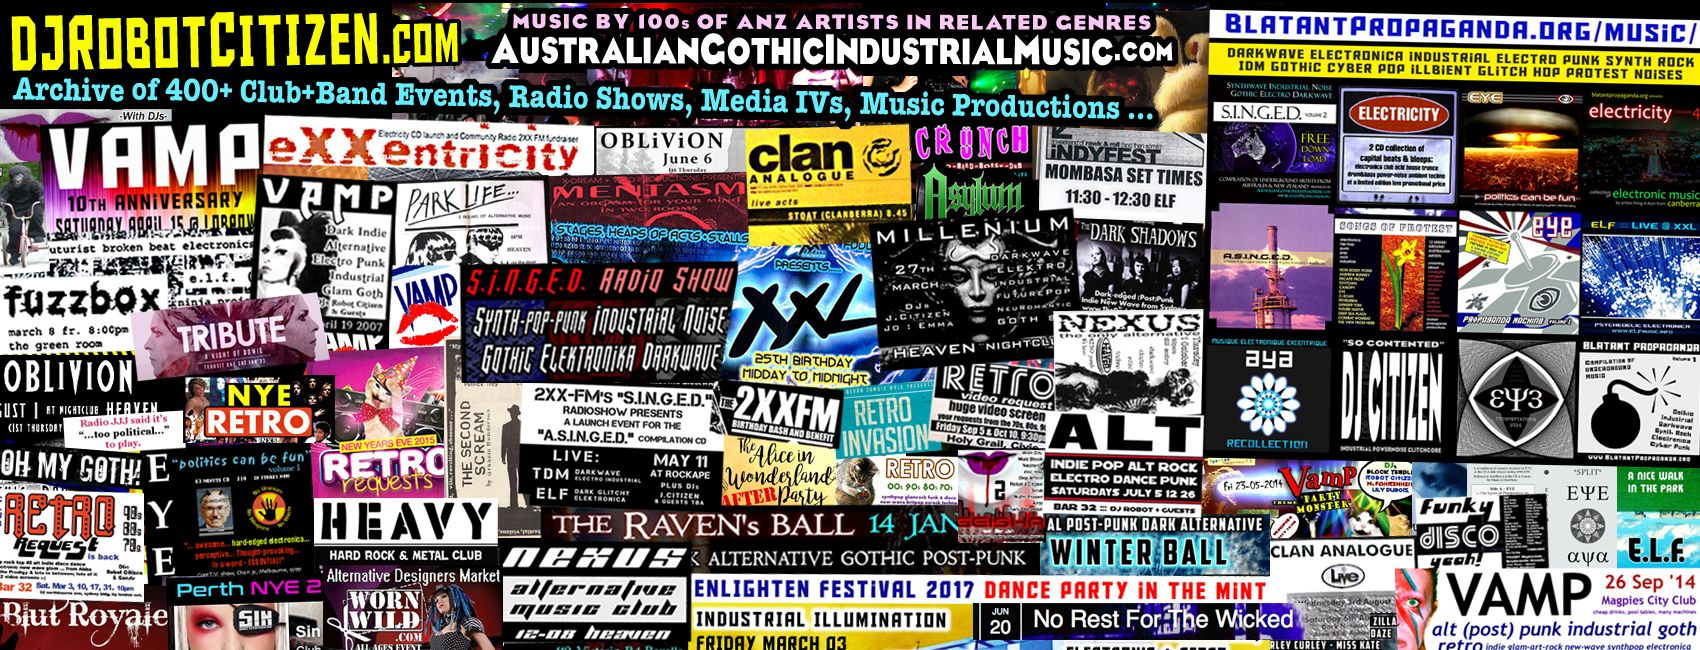 Australian Canberra Nightclub Nightclubs Alternative Industrial Gothic Goth Electronic Dance DJs DJ Robot Citizen Punk Rock Heavy Metal Music Subculture Club Scene History Canberran Events Clubs Australia Photos People Flyers Posters